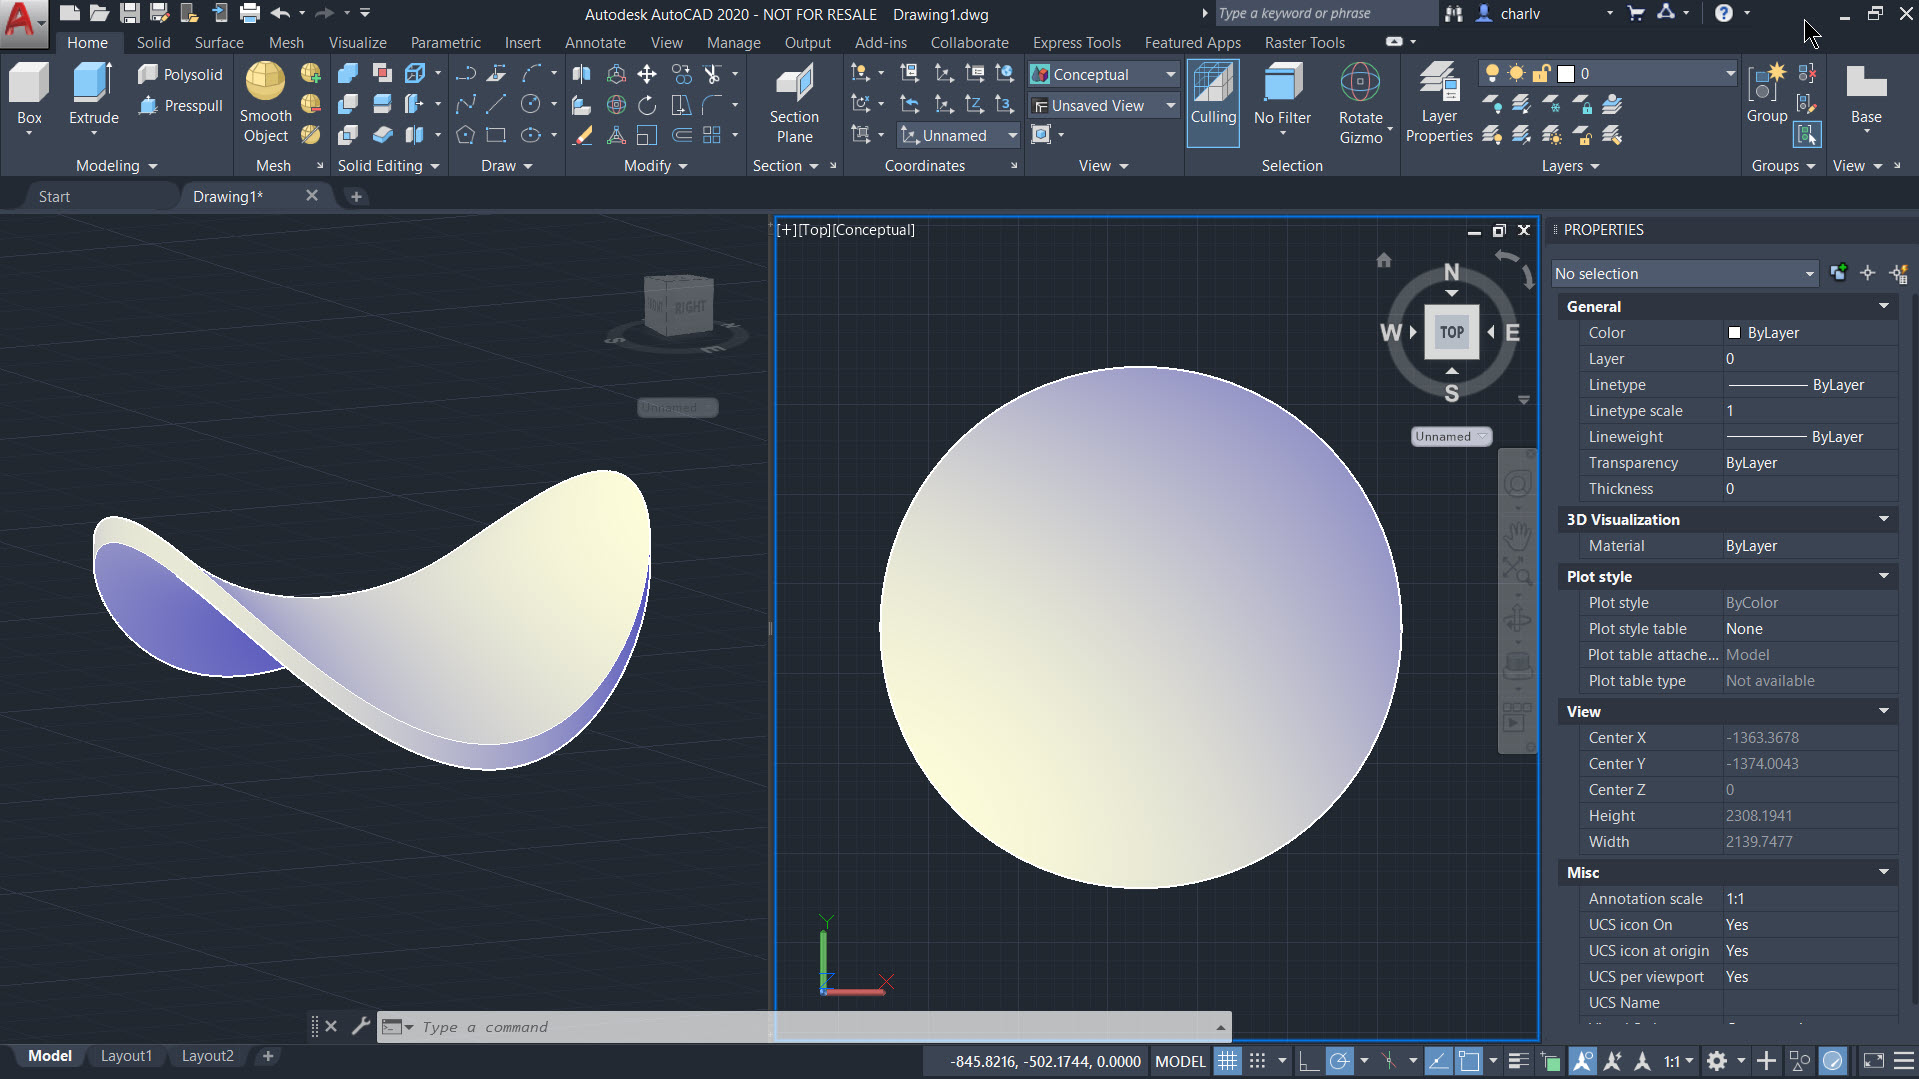 How To Create A 3d Curved Circular Shape In Autocad Micrographics